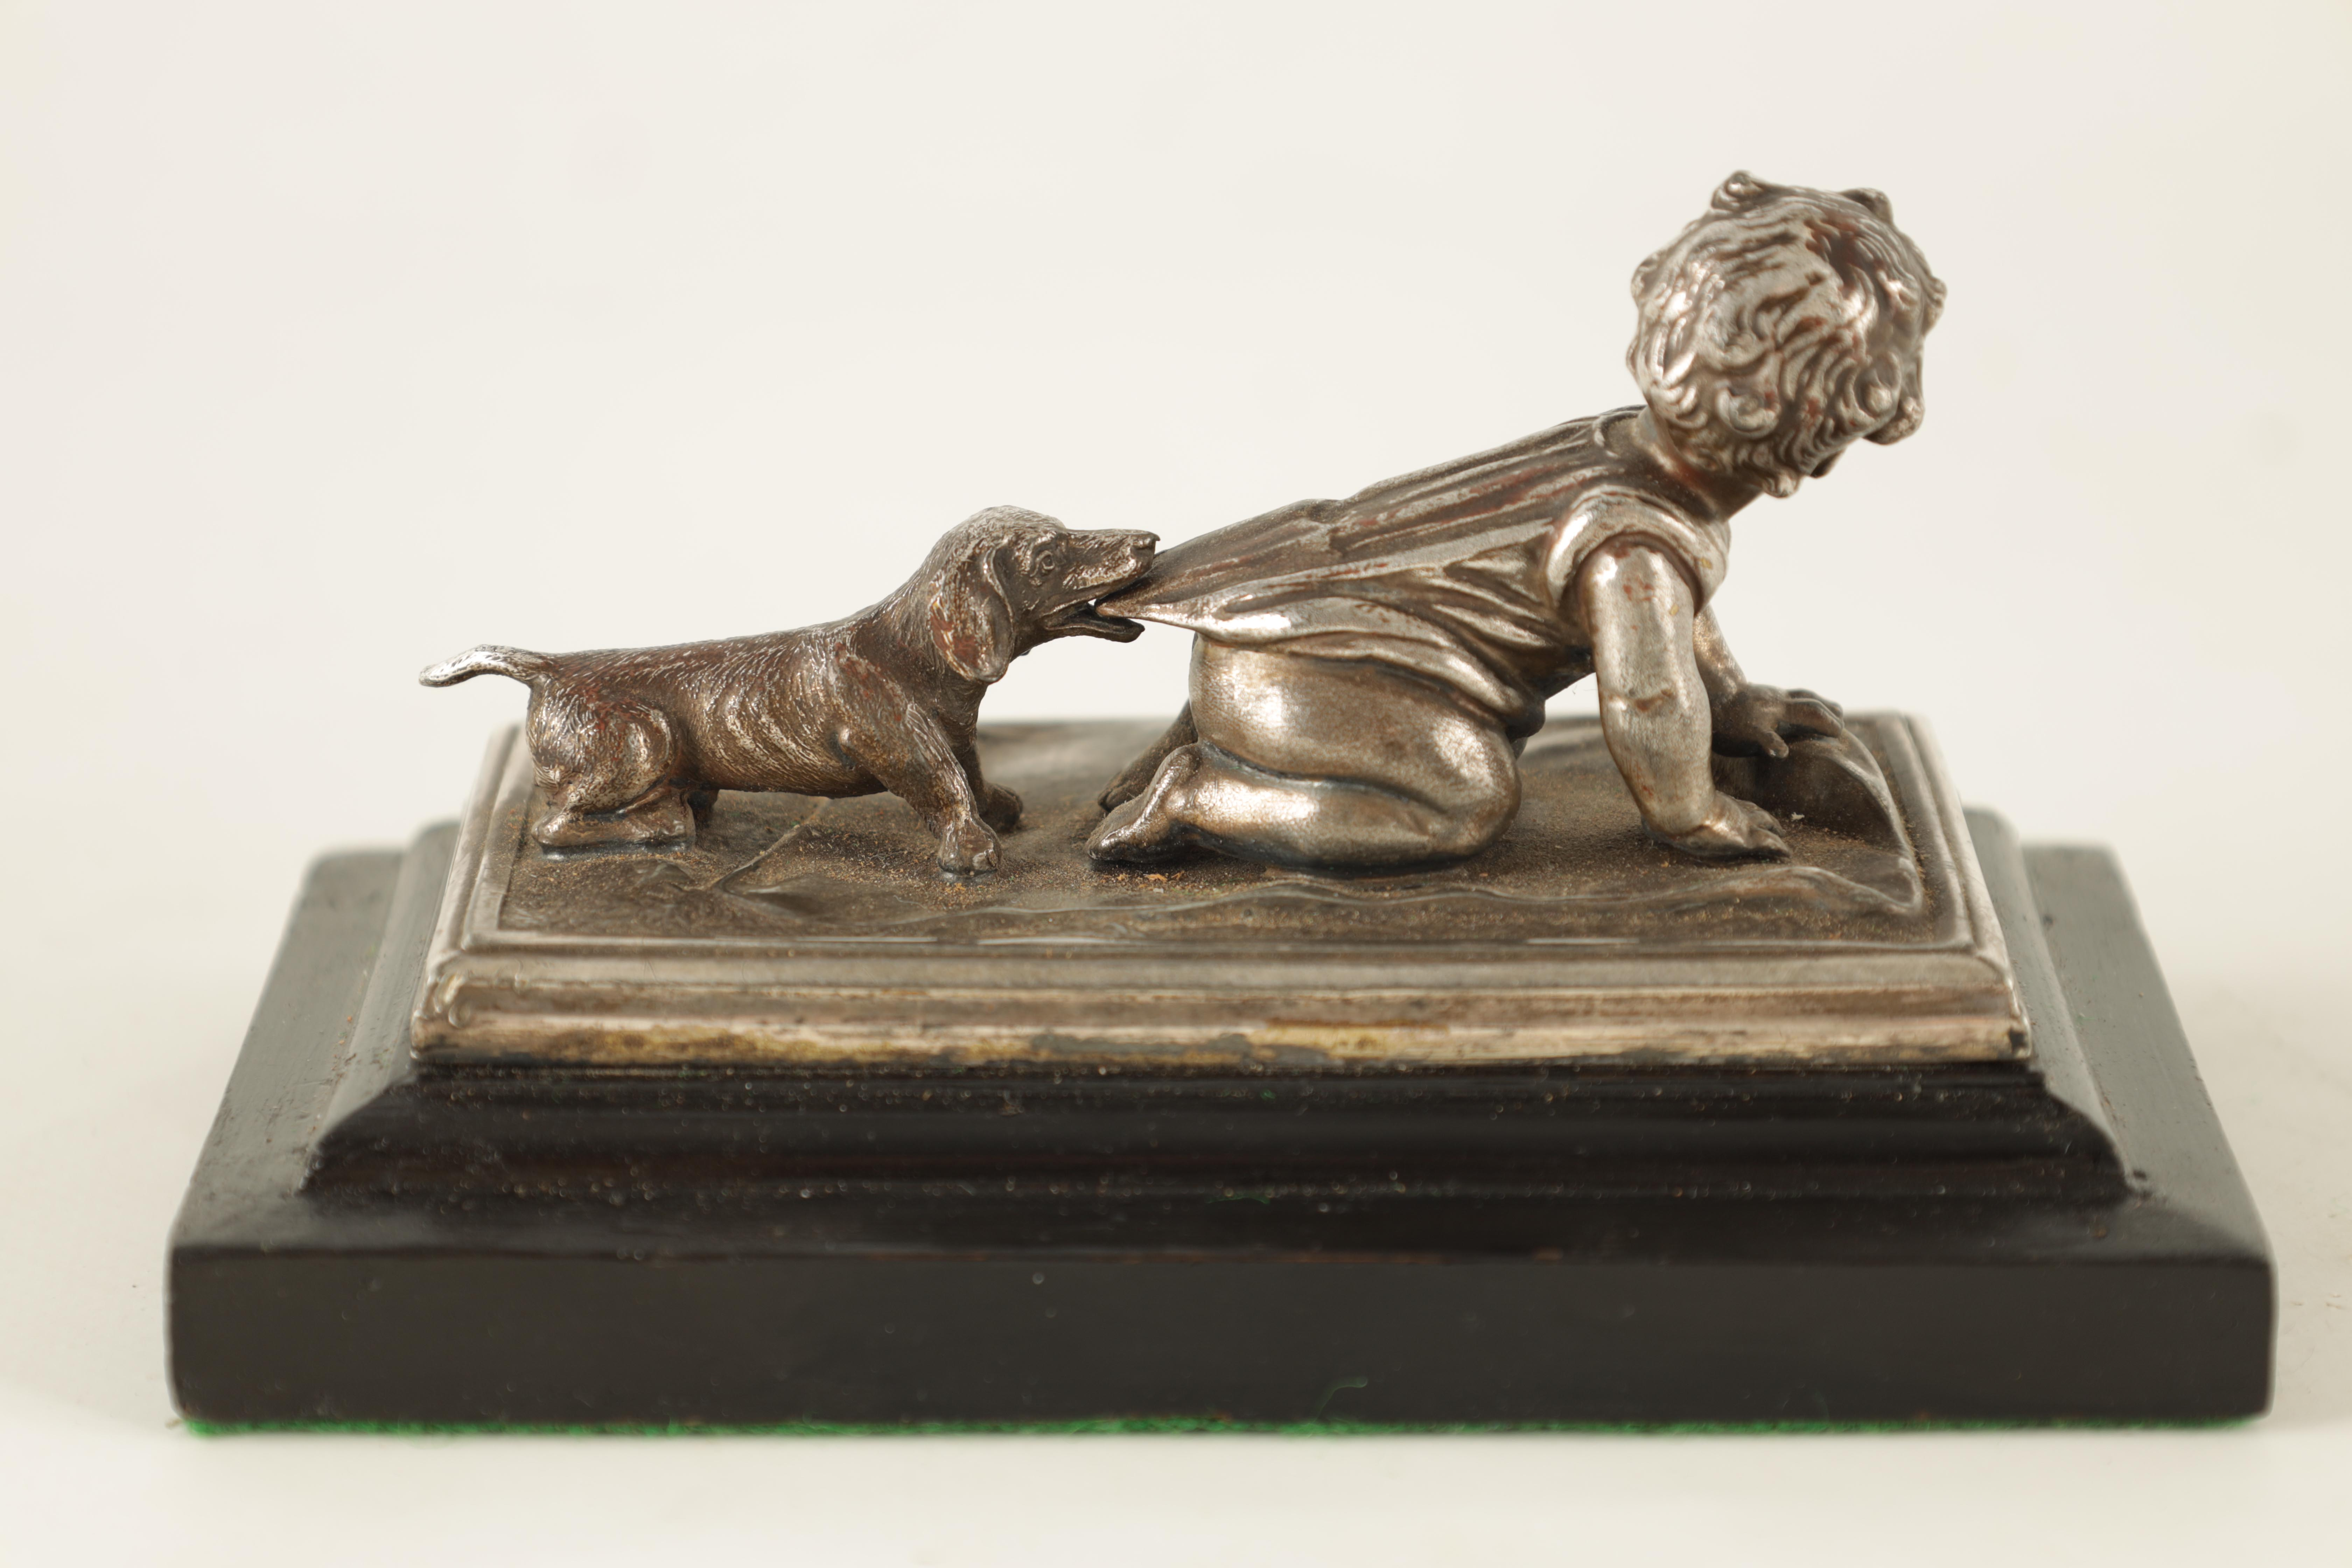 AN UNUSUAL 19TH CENTURY W.M.F. SILVERED METAL DESK PAPERWEIGHT depicting a small child with a - Image 4 of 5